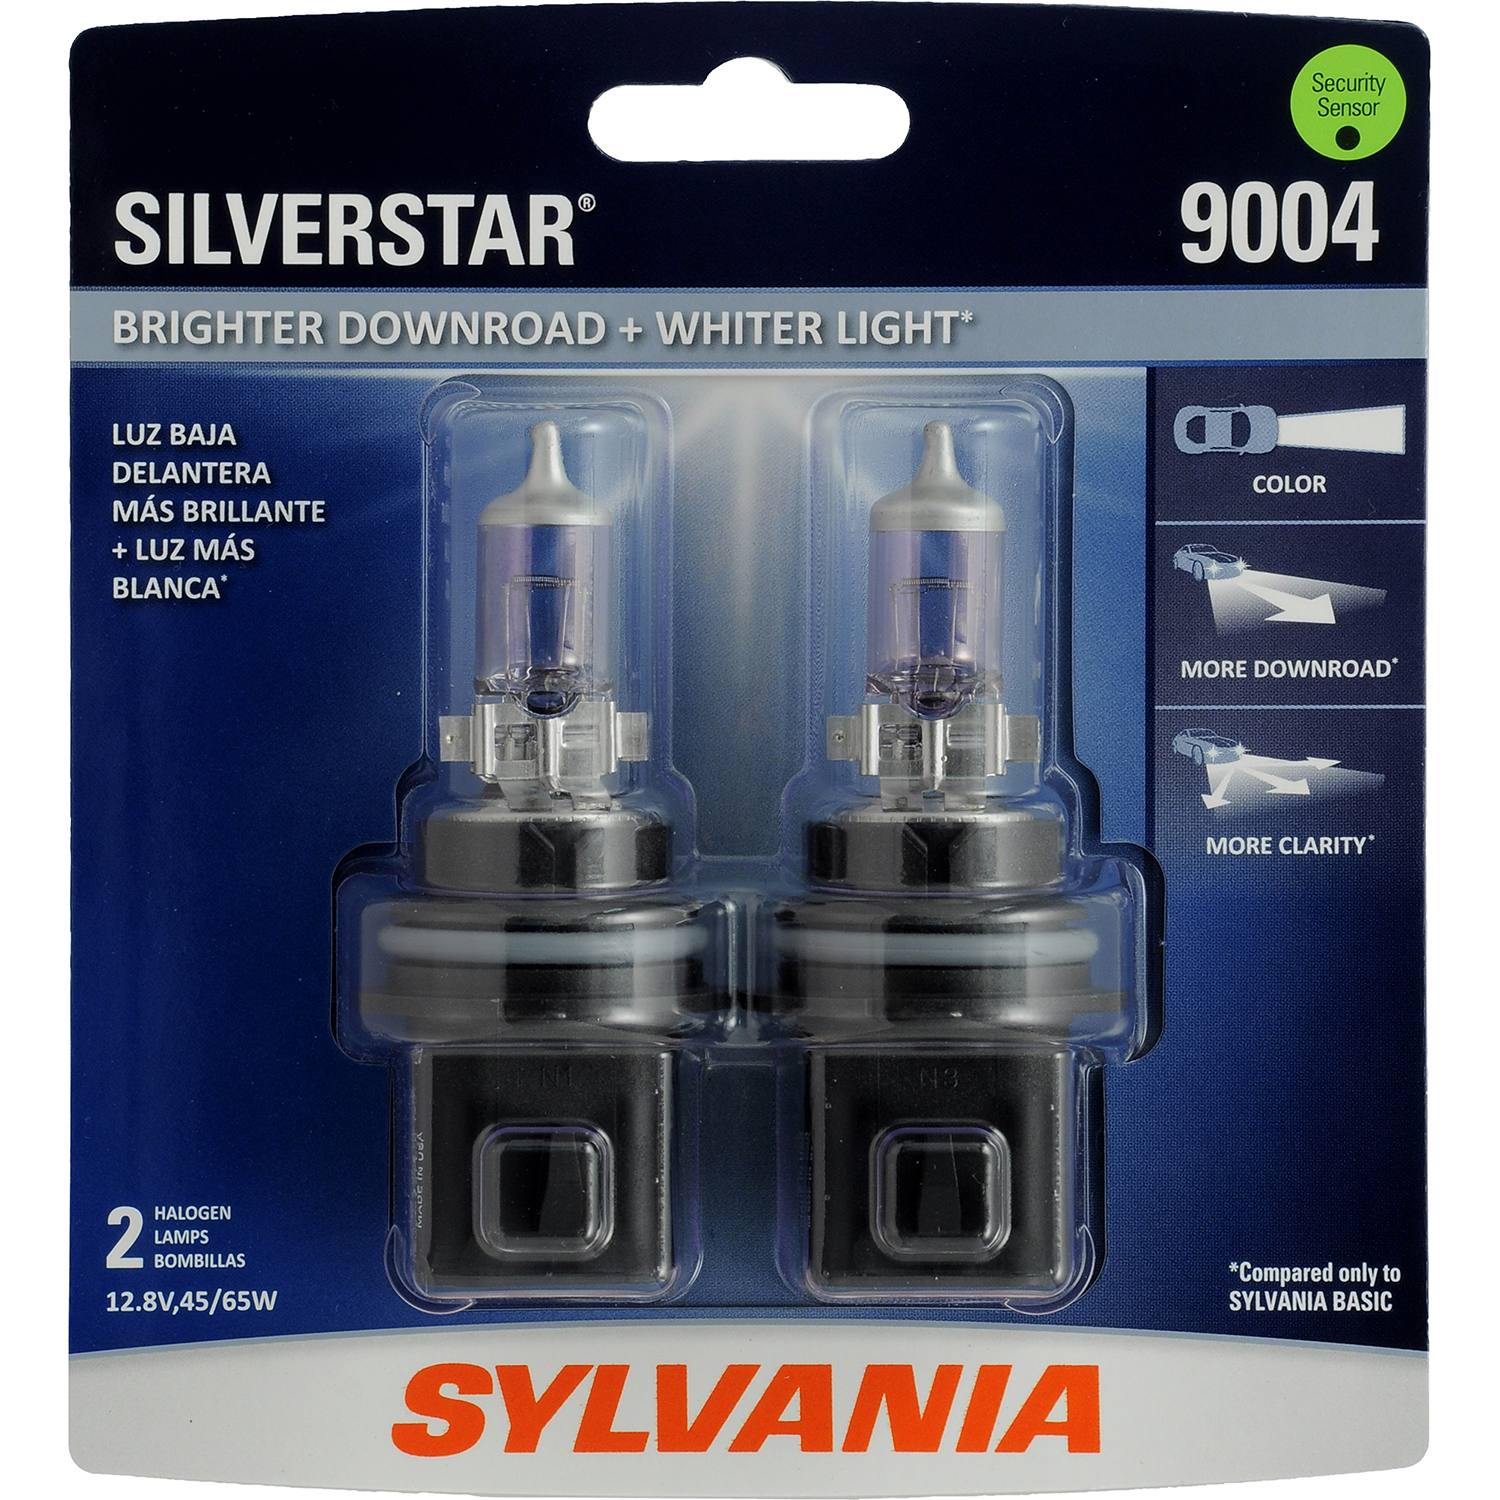 SYLVANIA 9004 SilverStar Halogen Headlight Bulb, Pack of 2